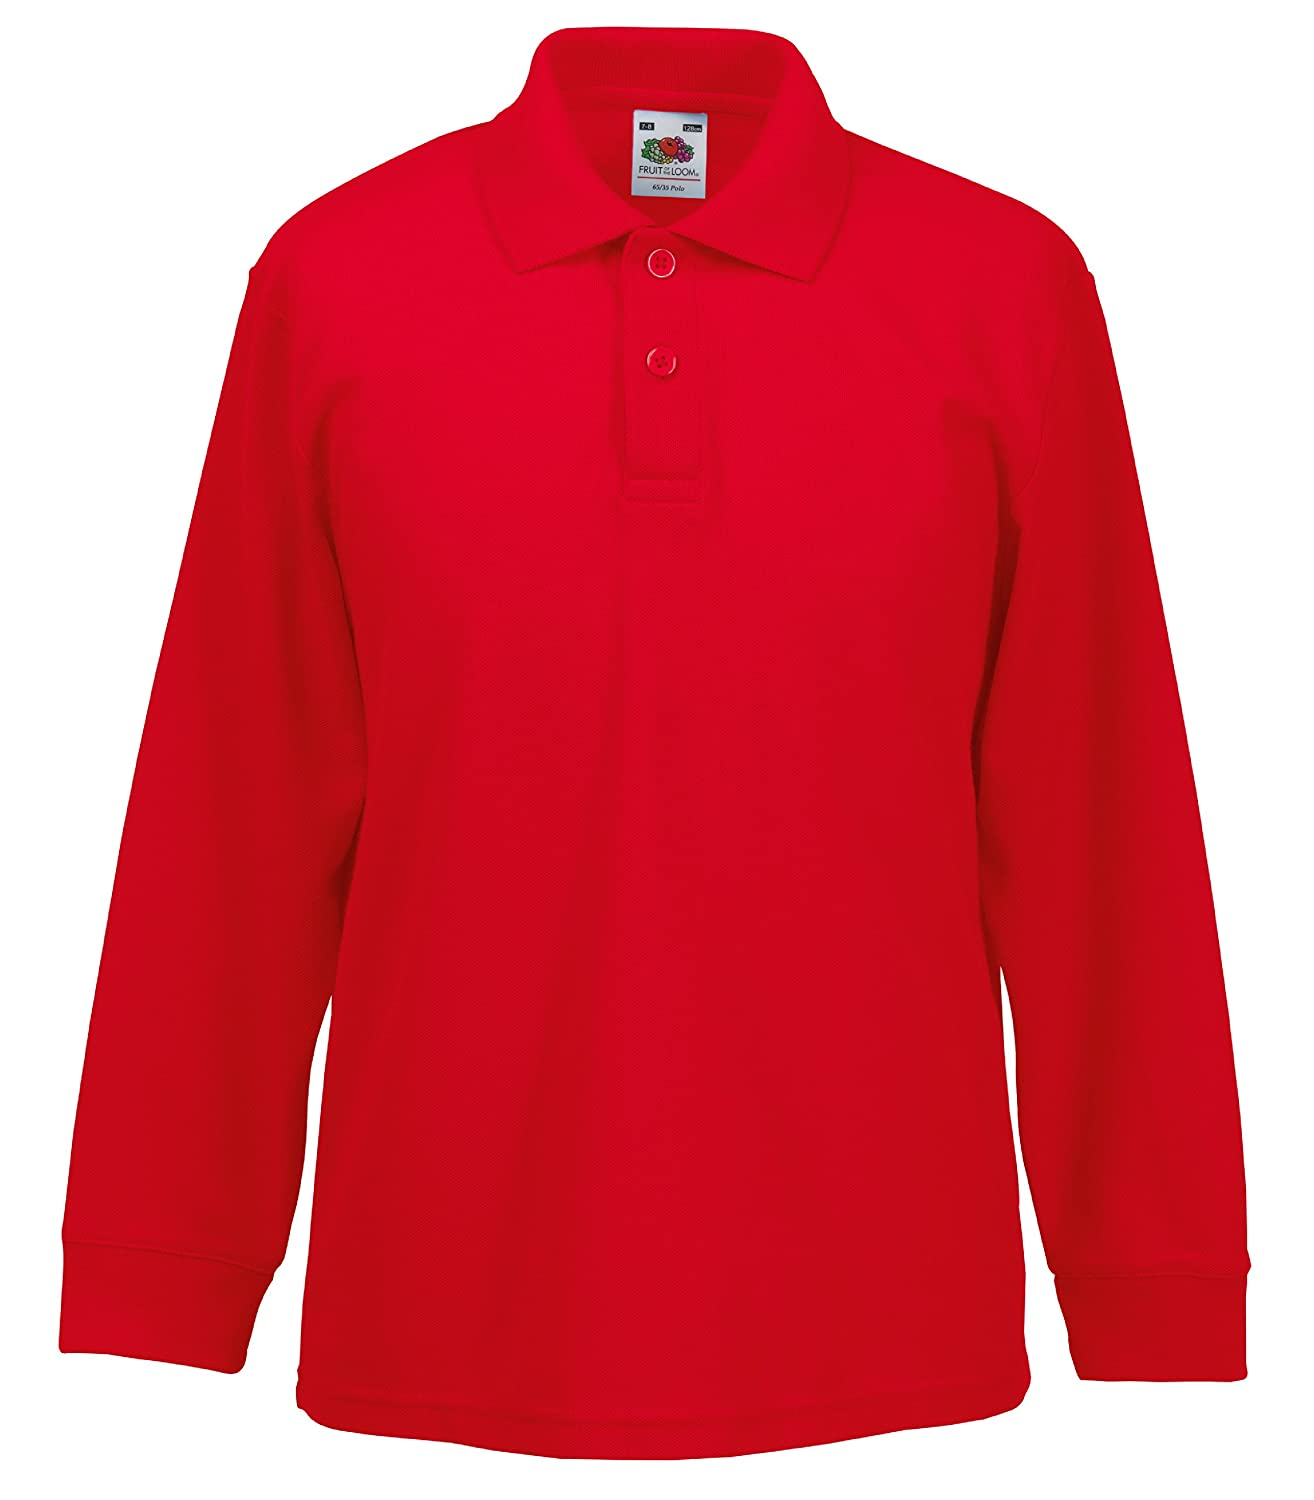 buy red long sleeve polo shirt 63 off